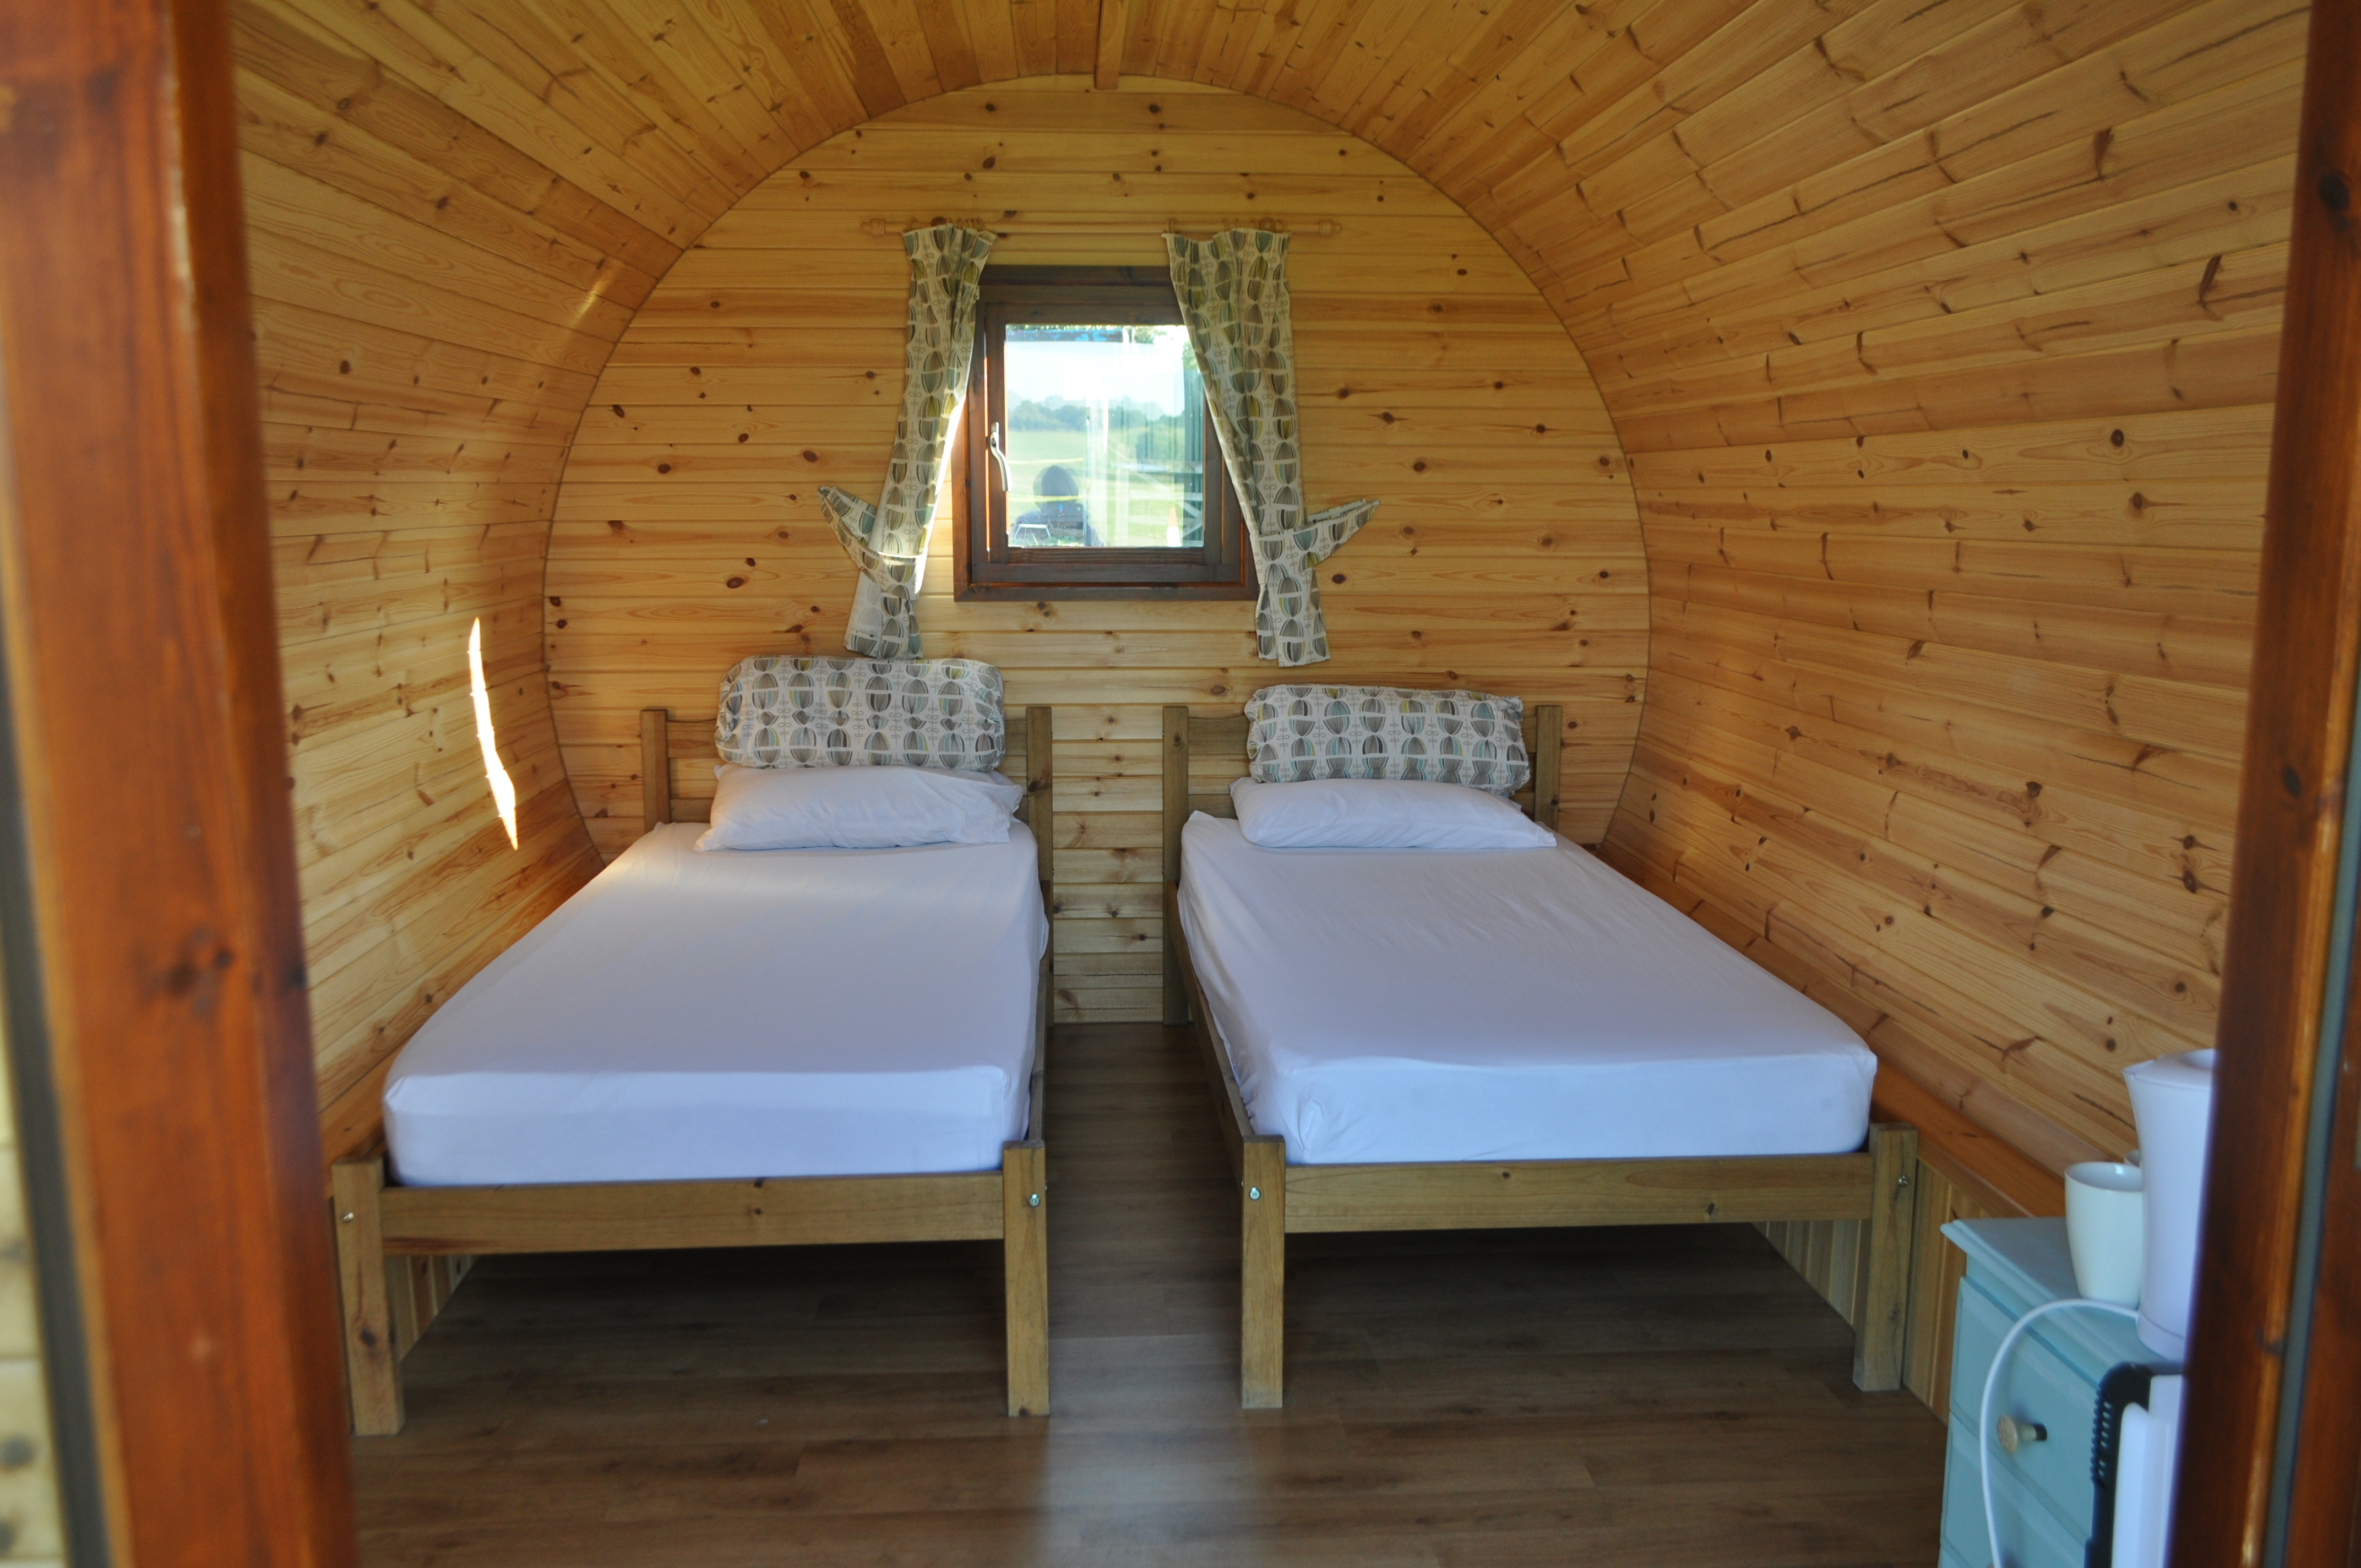 Iron Gorge Camping glamping pod interior